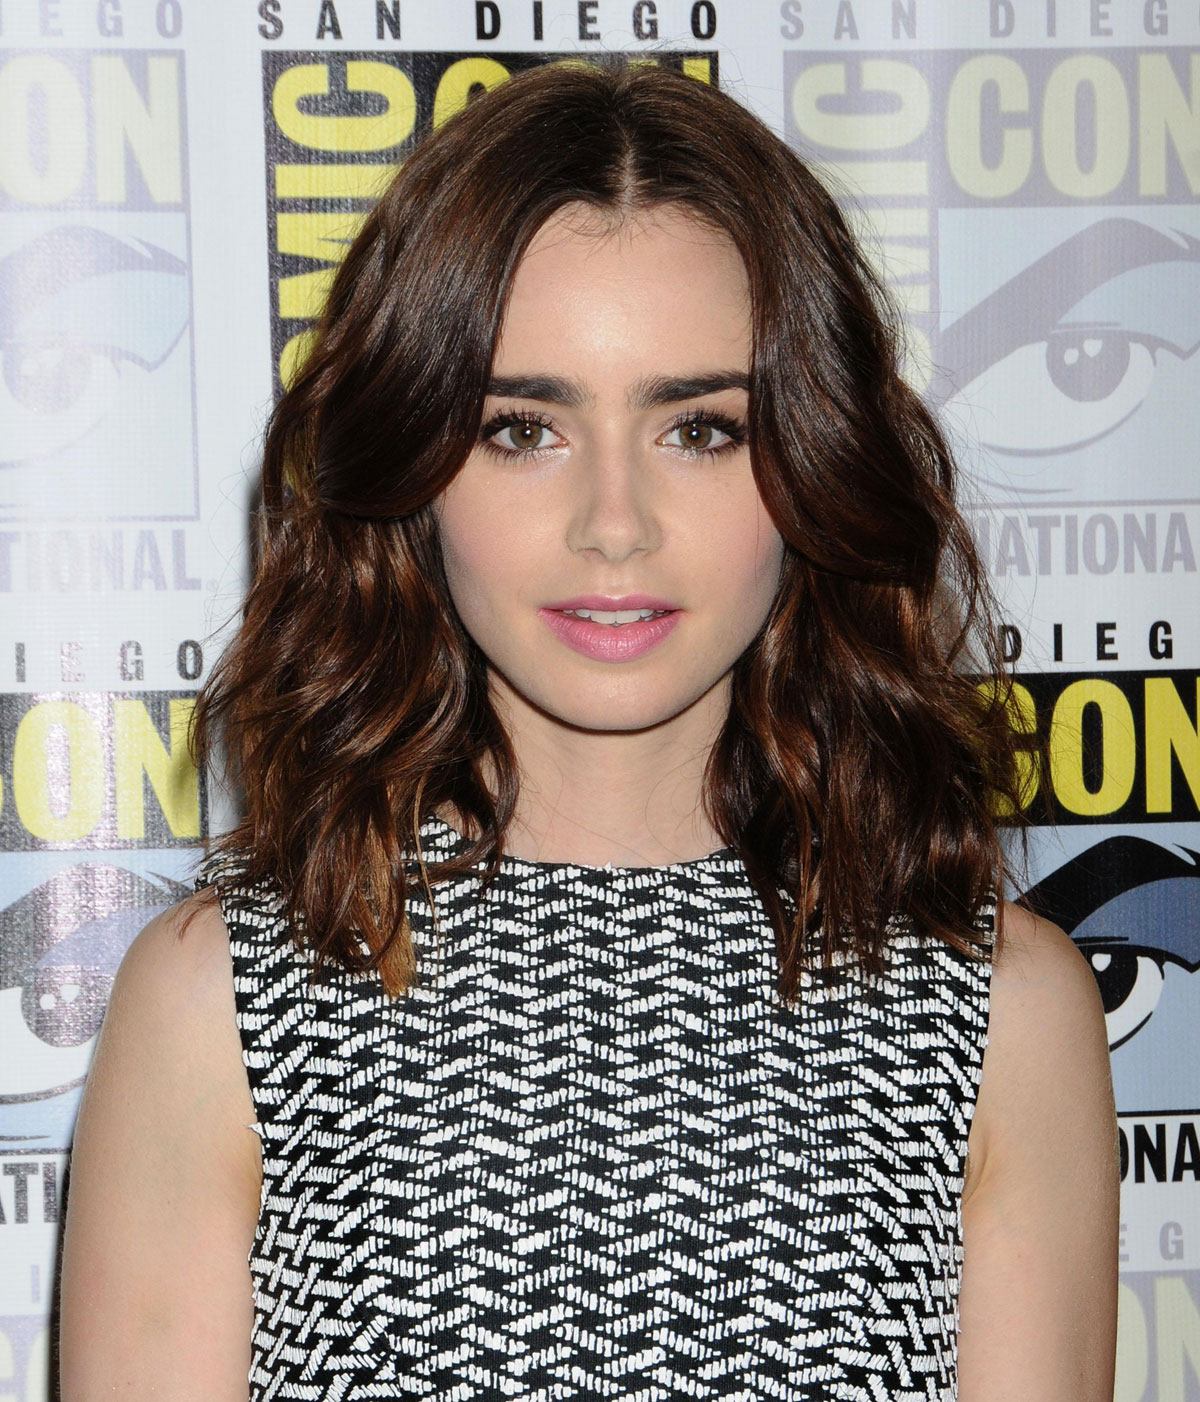 Lily Collins Pink Lips Big Eyebrows